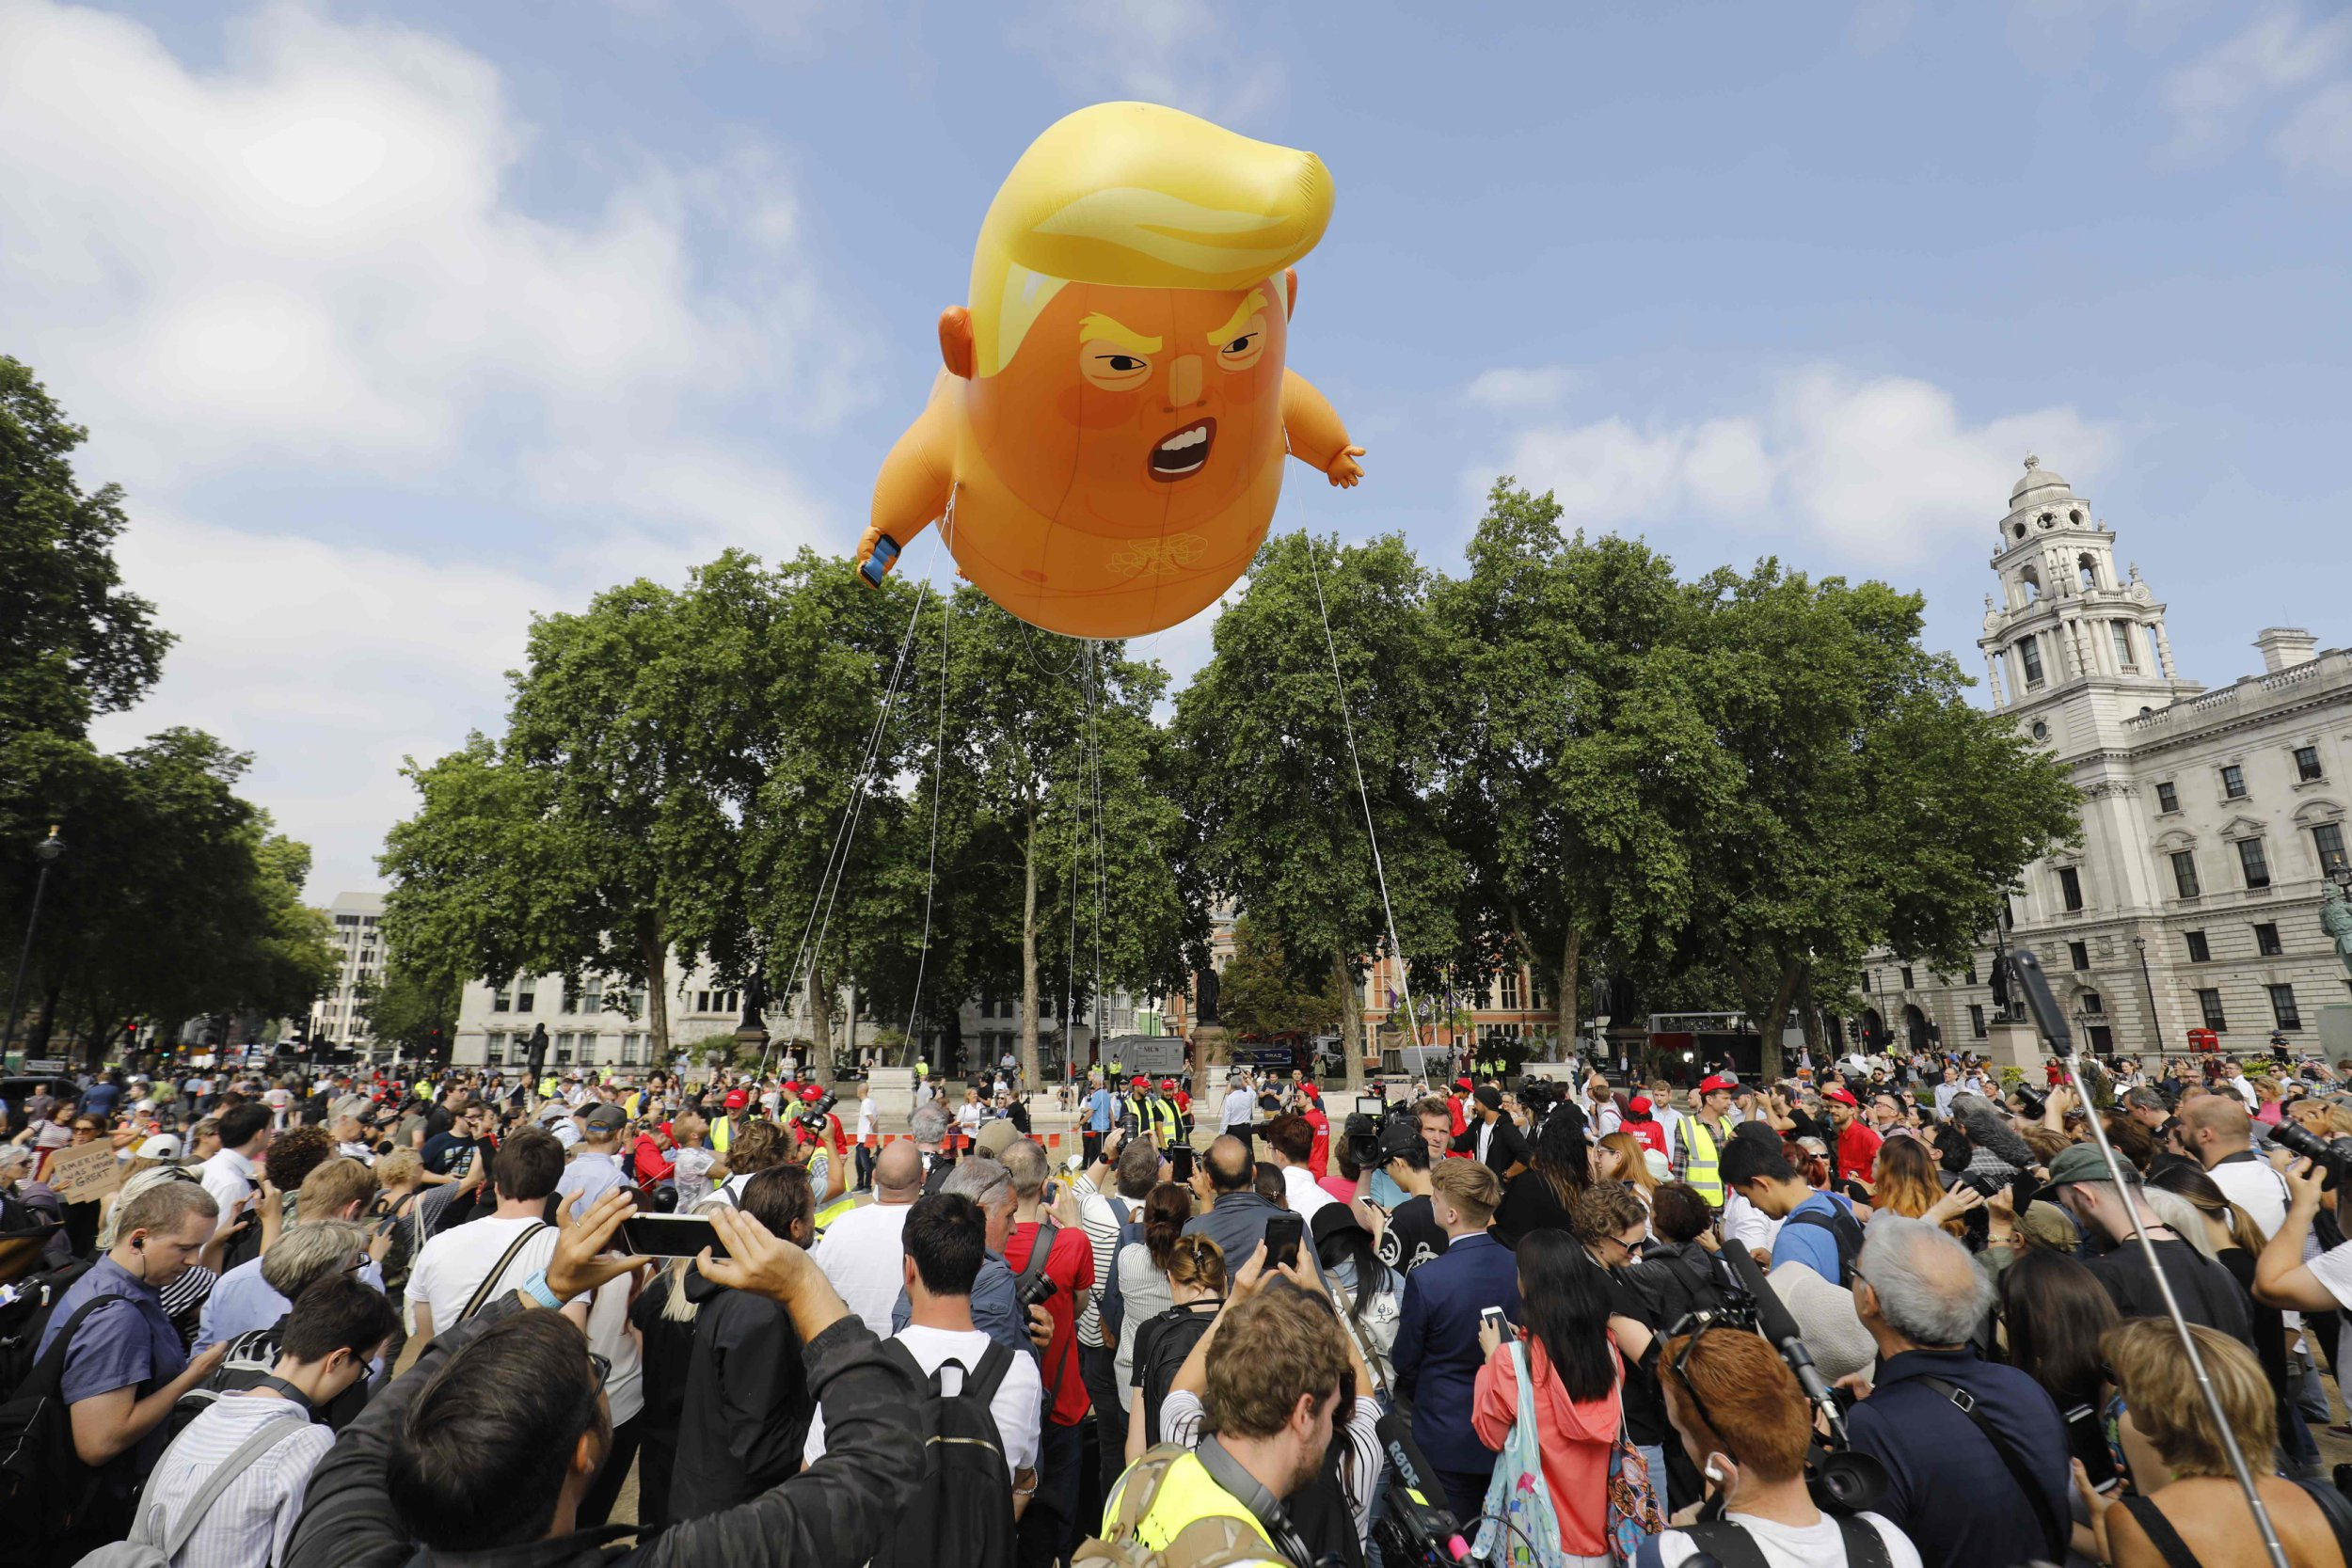 Trump baby 'will fly again' when the US president visits Ireland